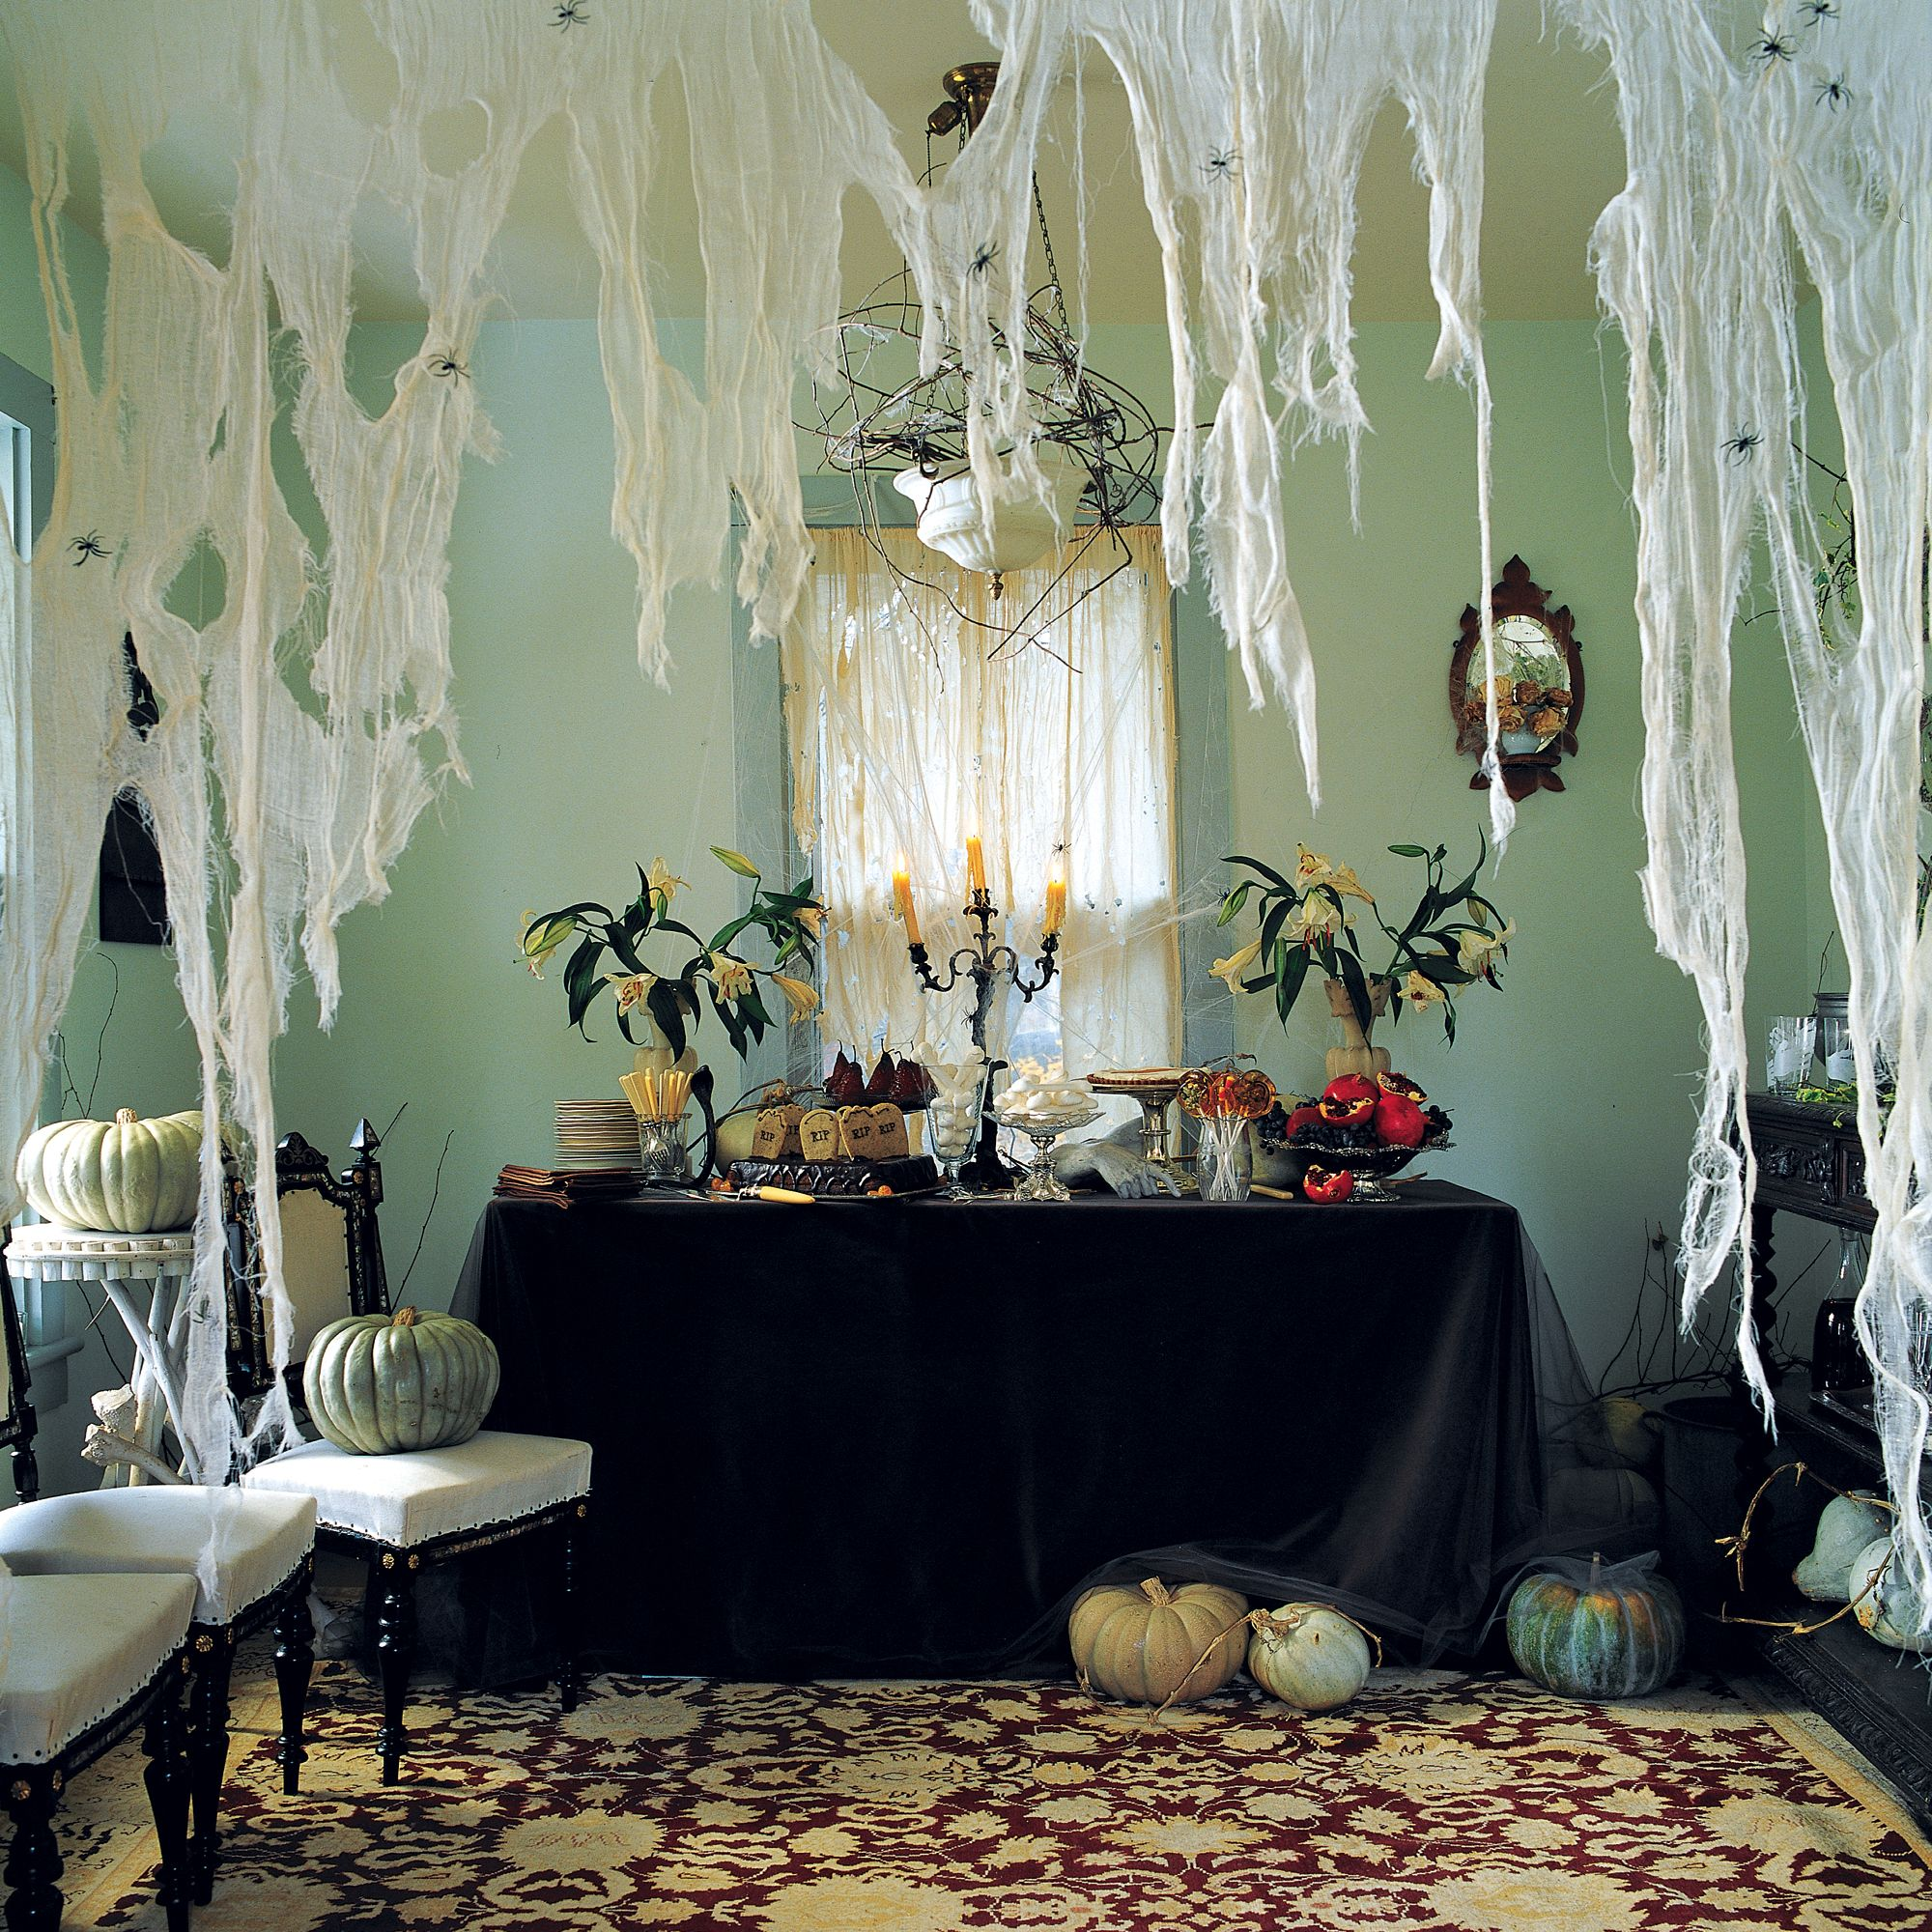 Indoor Halloween Decorations Diy halloween party decorations, Fun - Inside Halloween Decorations